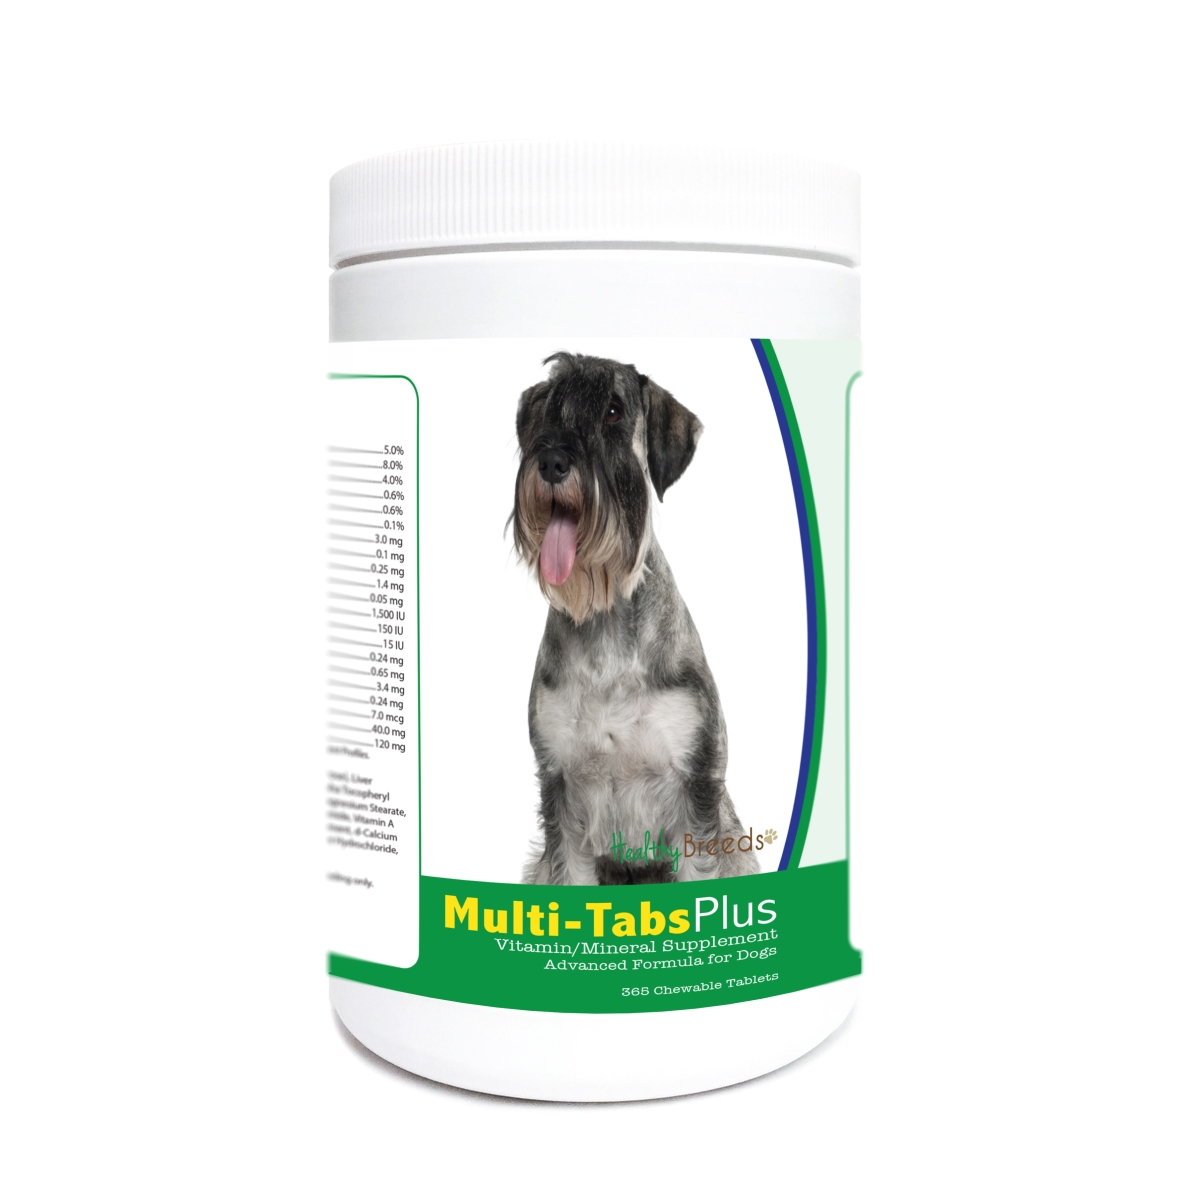 Healthy Breeds 840235178118 Standard Schnauzer Multi-Tabs Plus Chewable Tablets - 365 Count